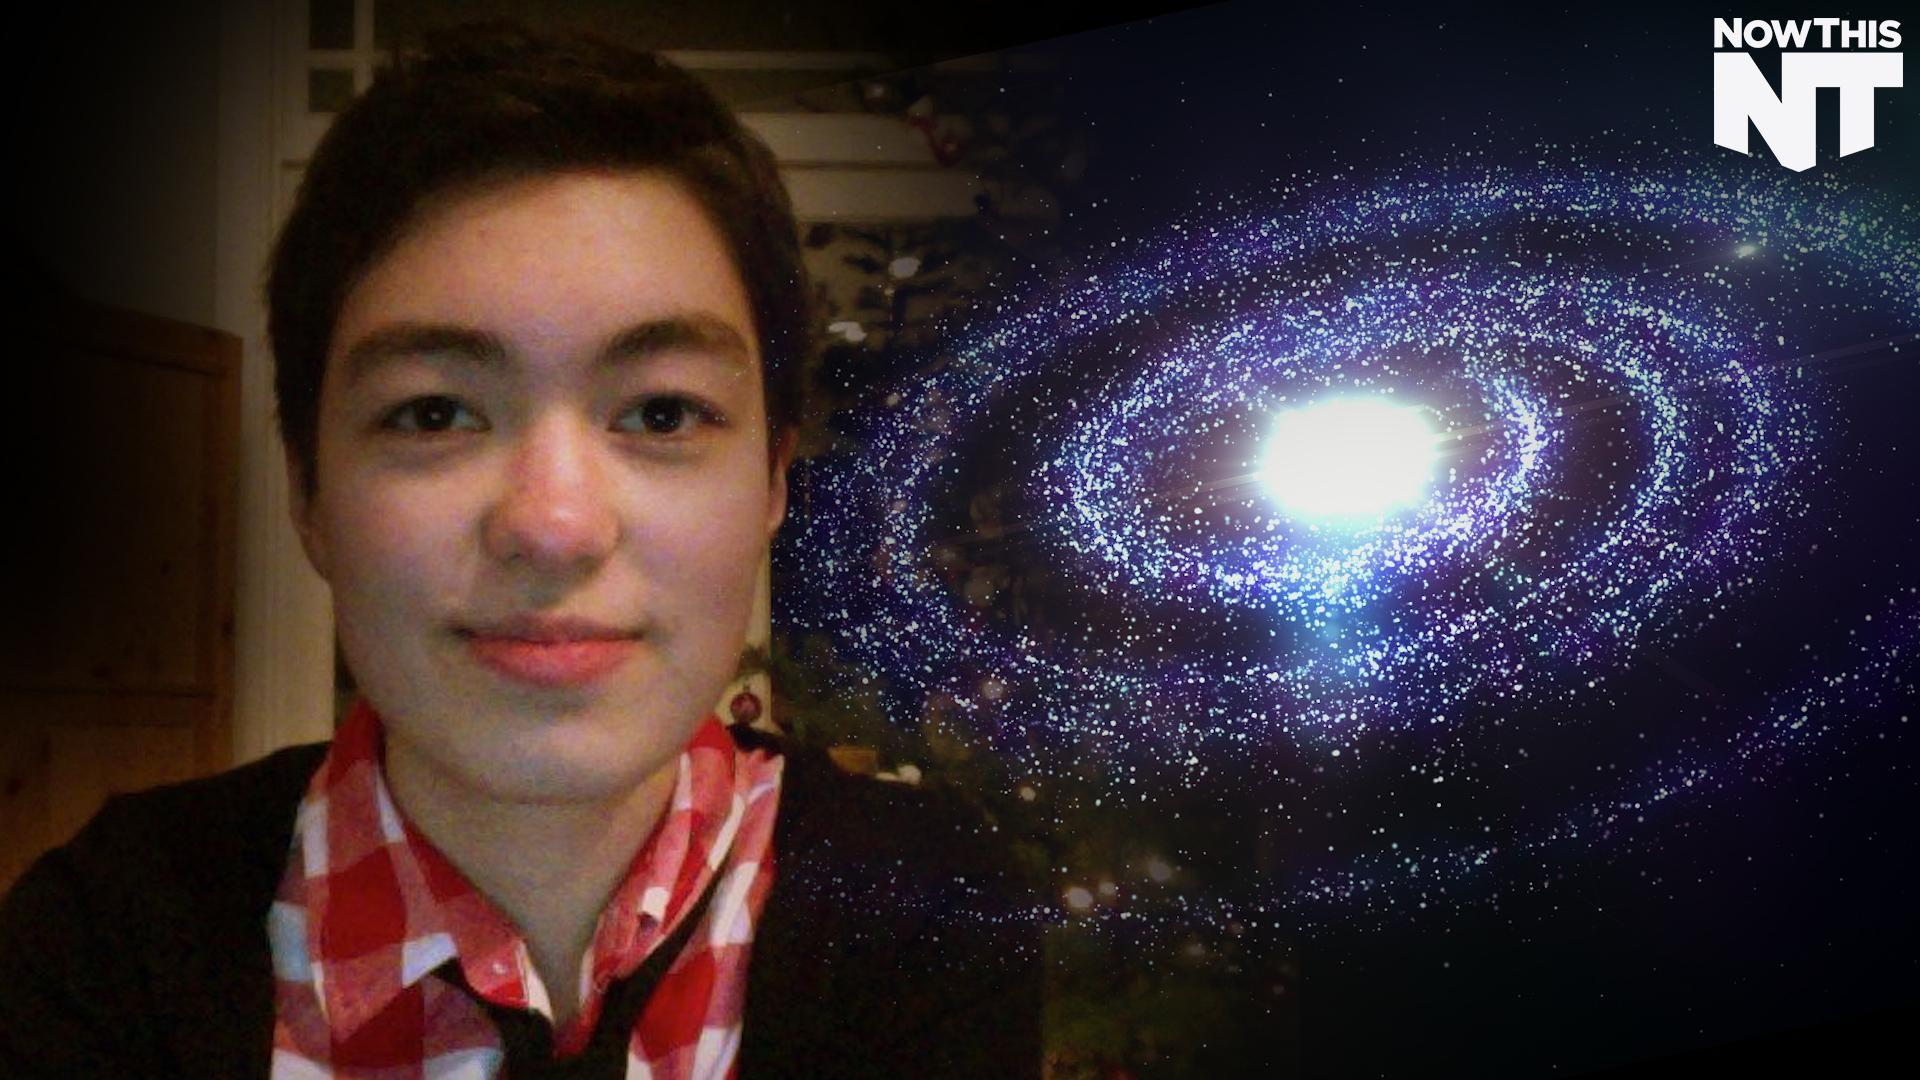 This 22-Year-Old Might Have Just Identified 4 New Planets